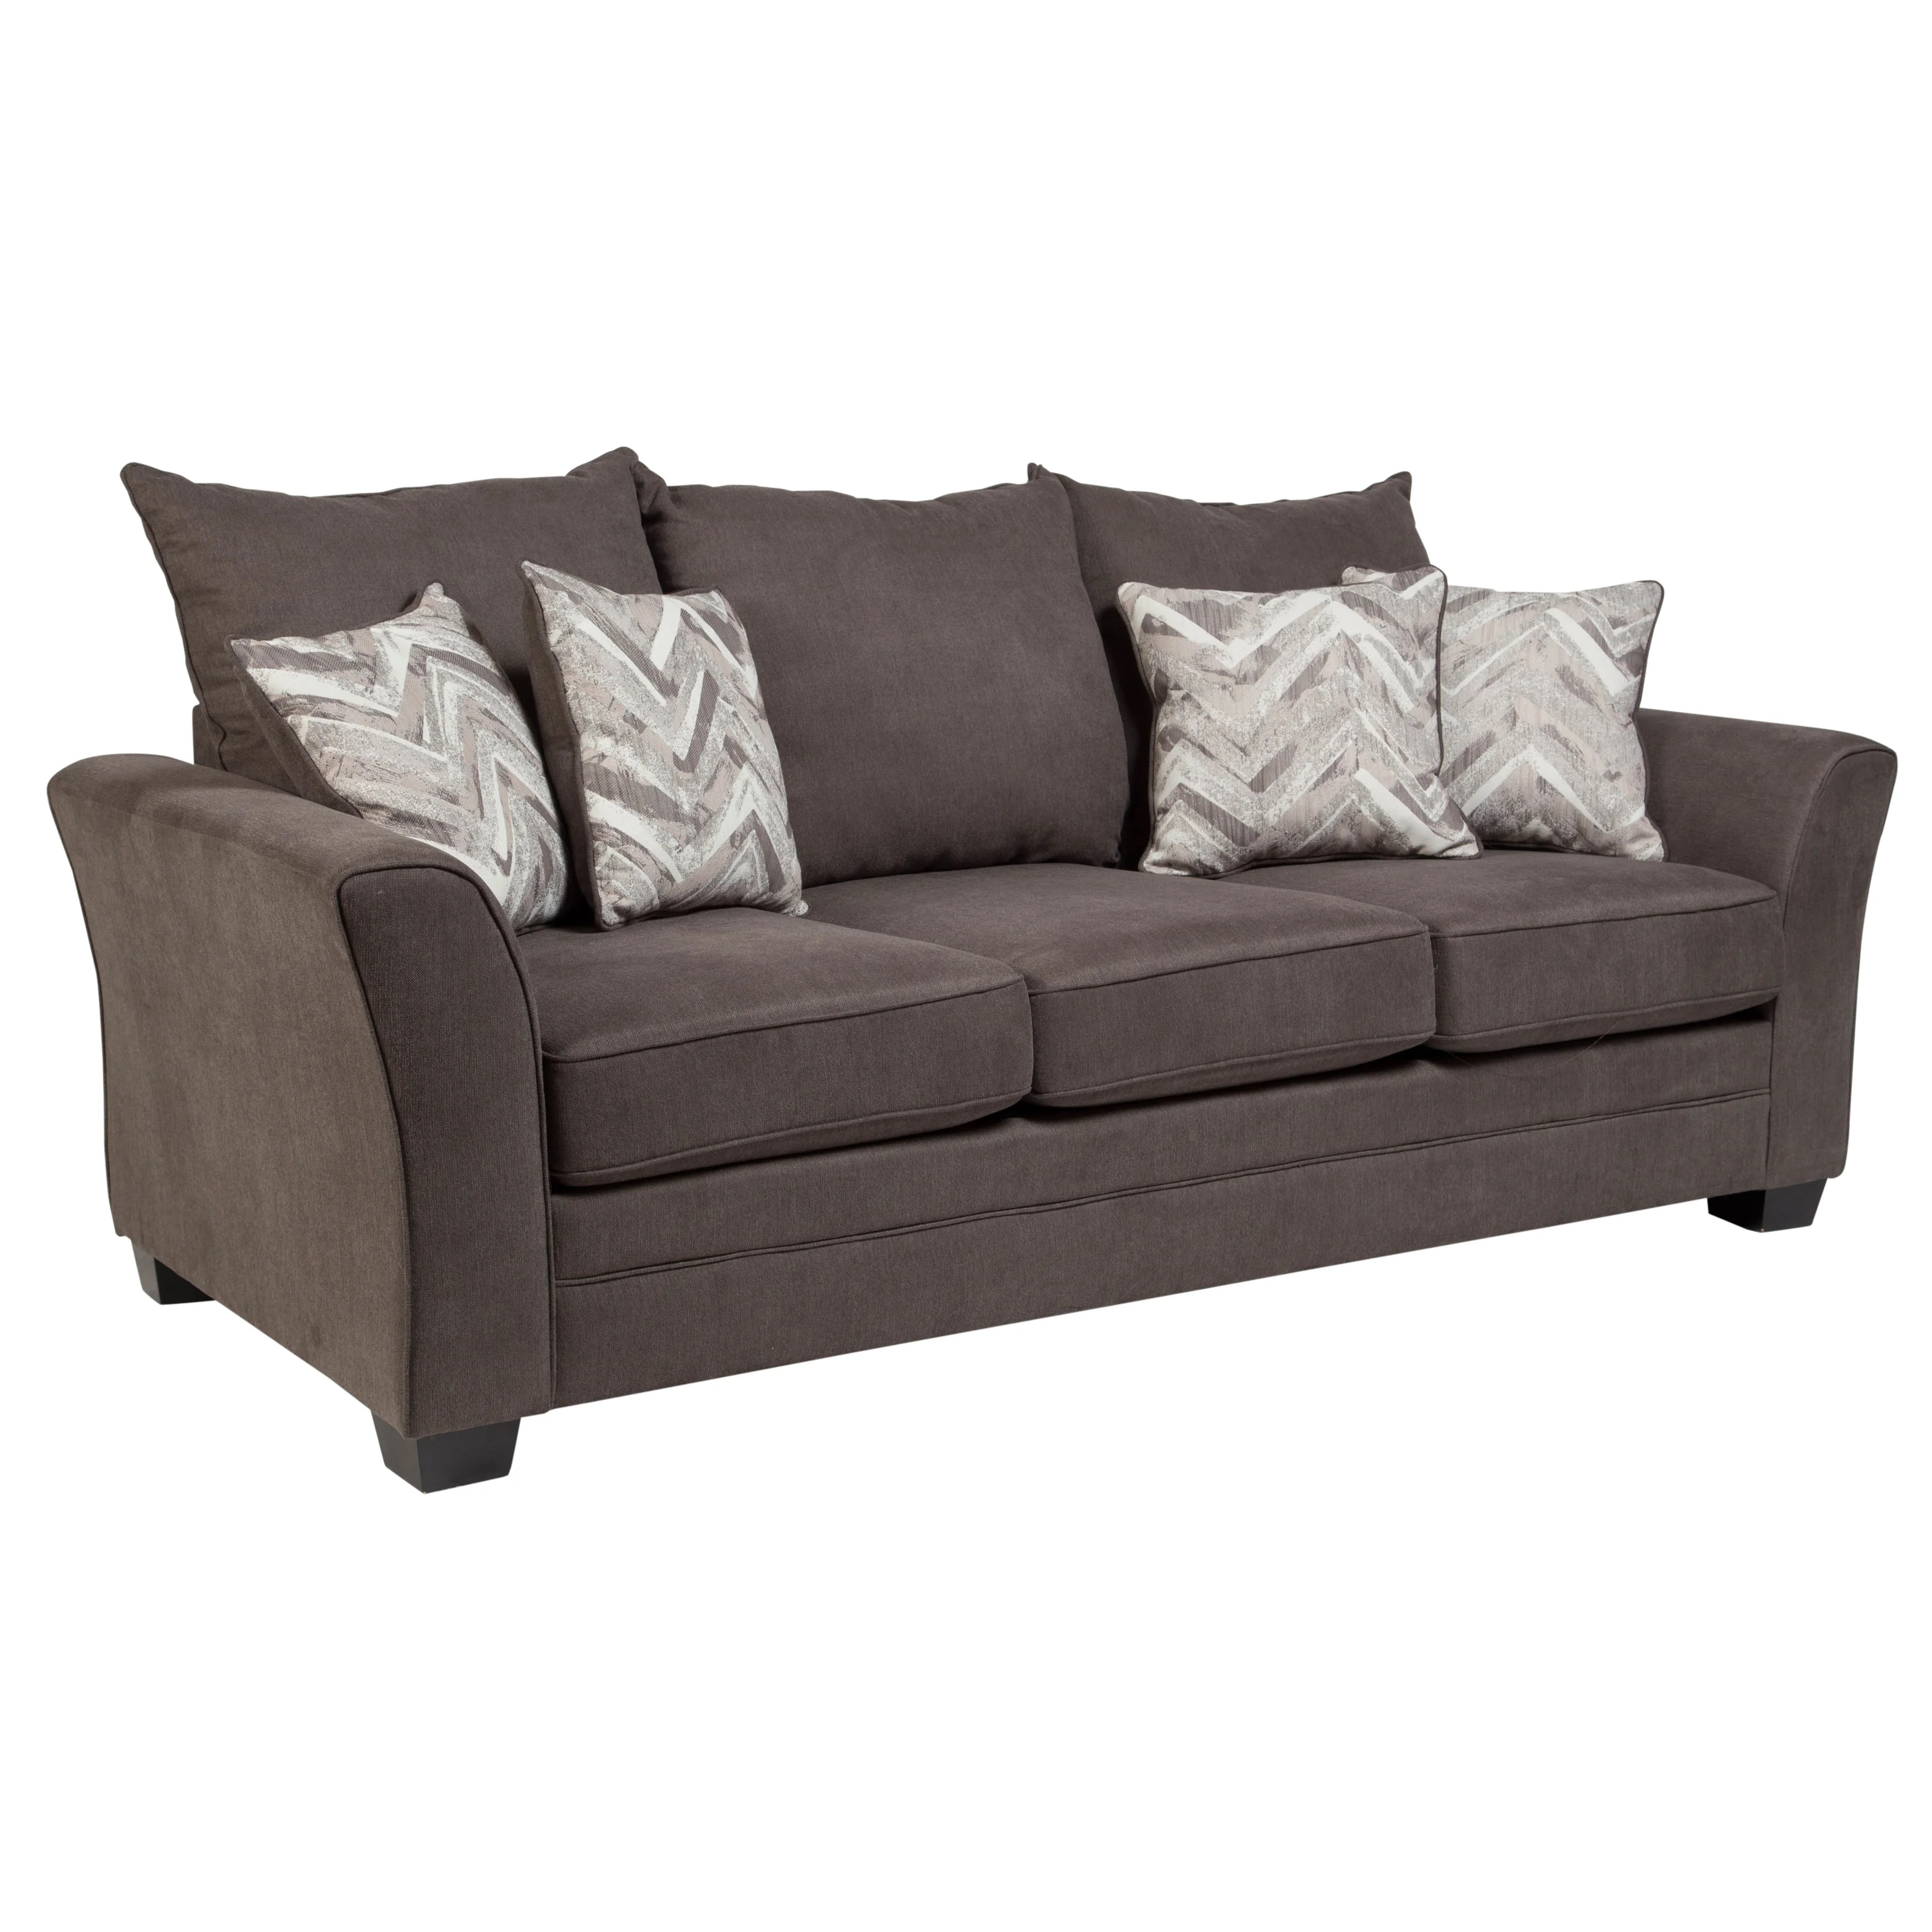 Two Sided Sofa Porter Dorian Grey Microfiber Contemporary Modern Sofa With 4 Two Sided Accent Pillows